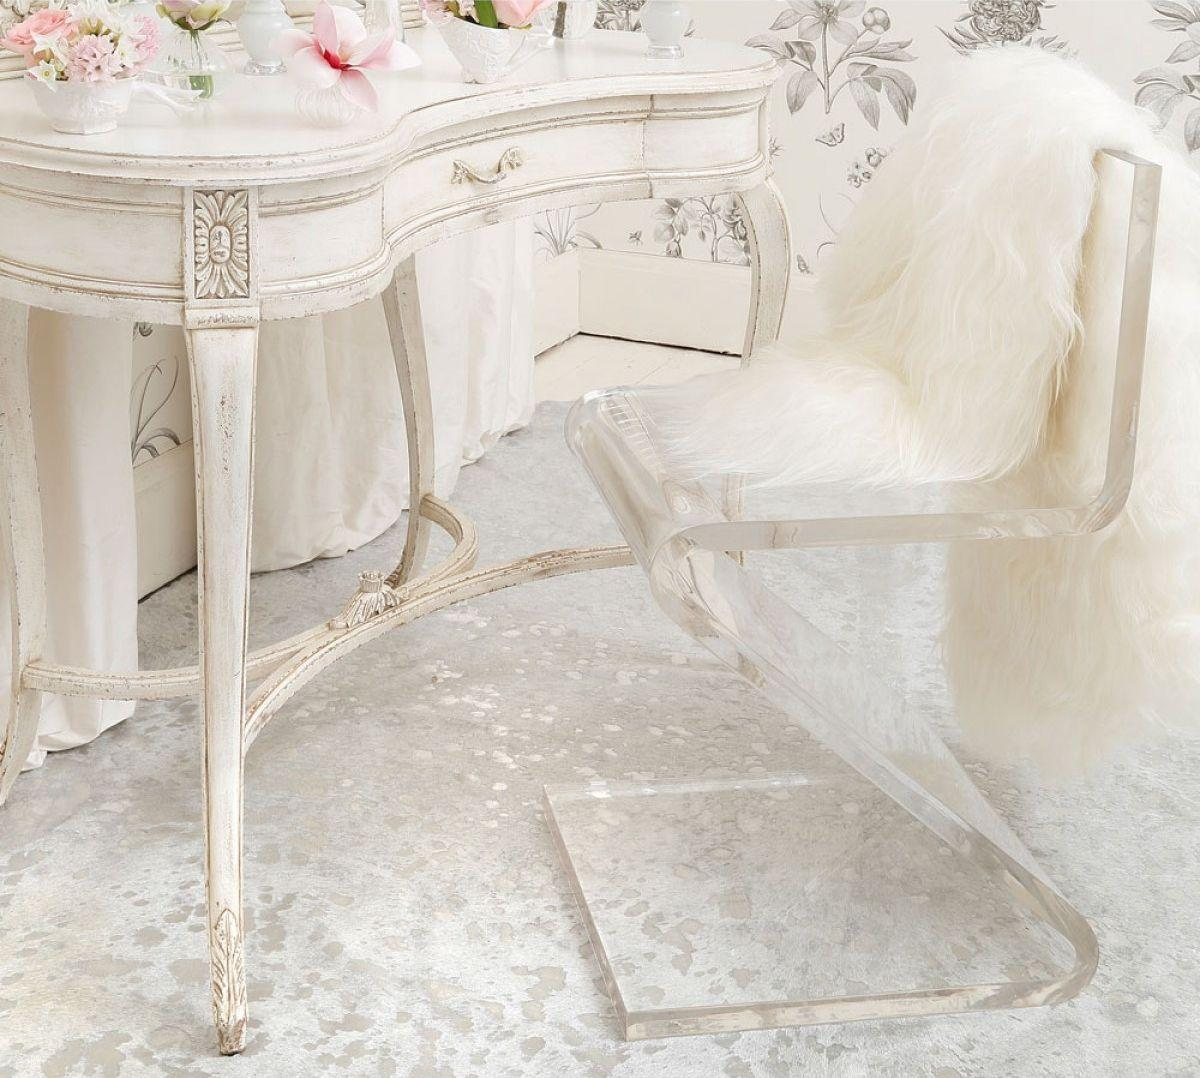 """Foto: Reprodução / <a href=""""http://www.frenchbedroomcompany.co.uk/z-chair-clear-solid-acrylic"""" target=""""_blank"""">French bedroom company</a>"""